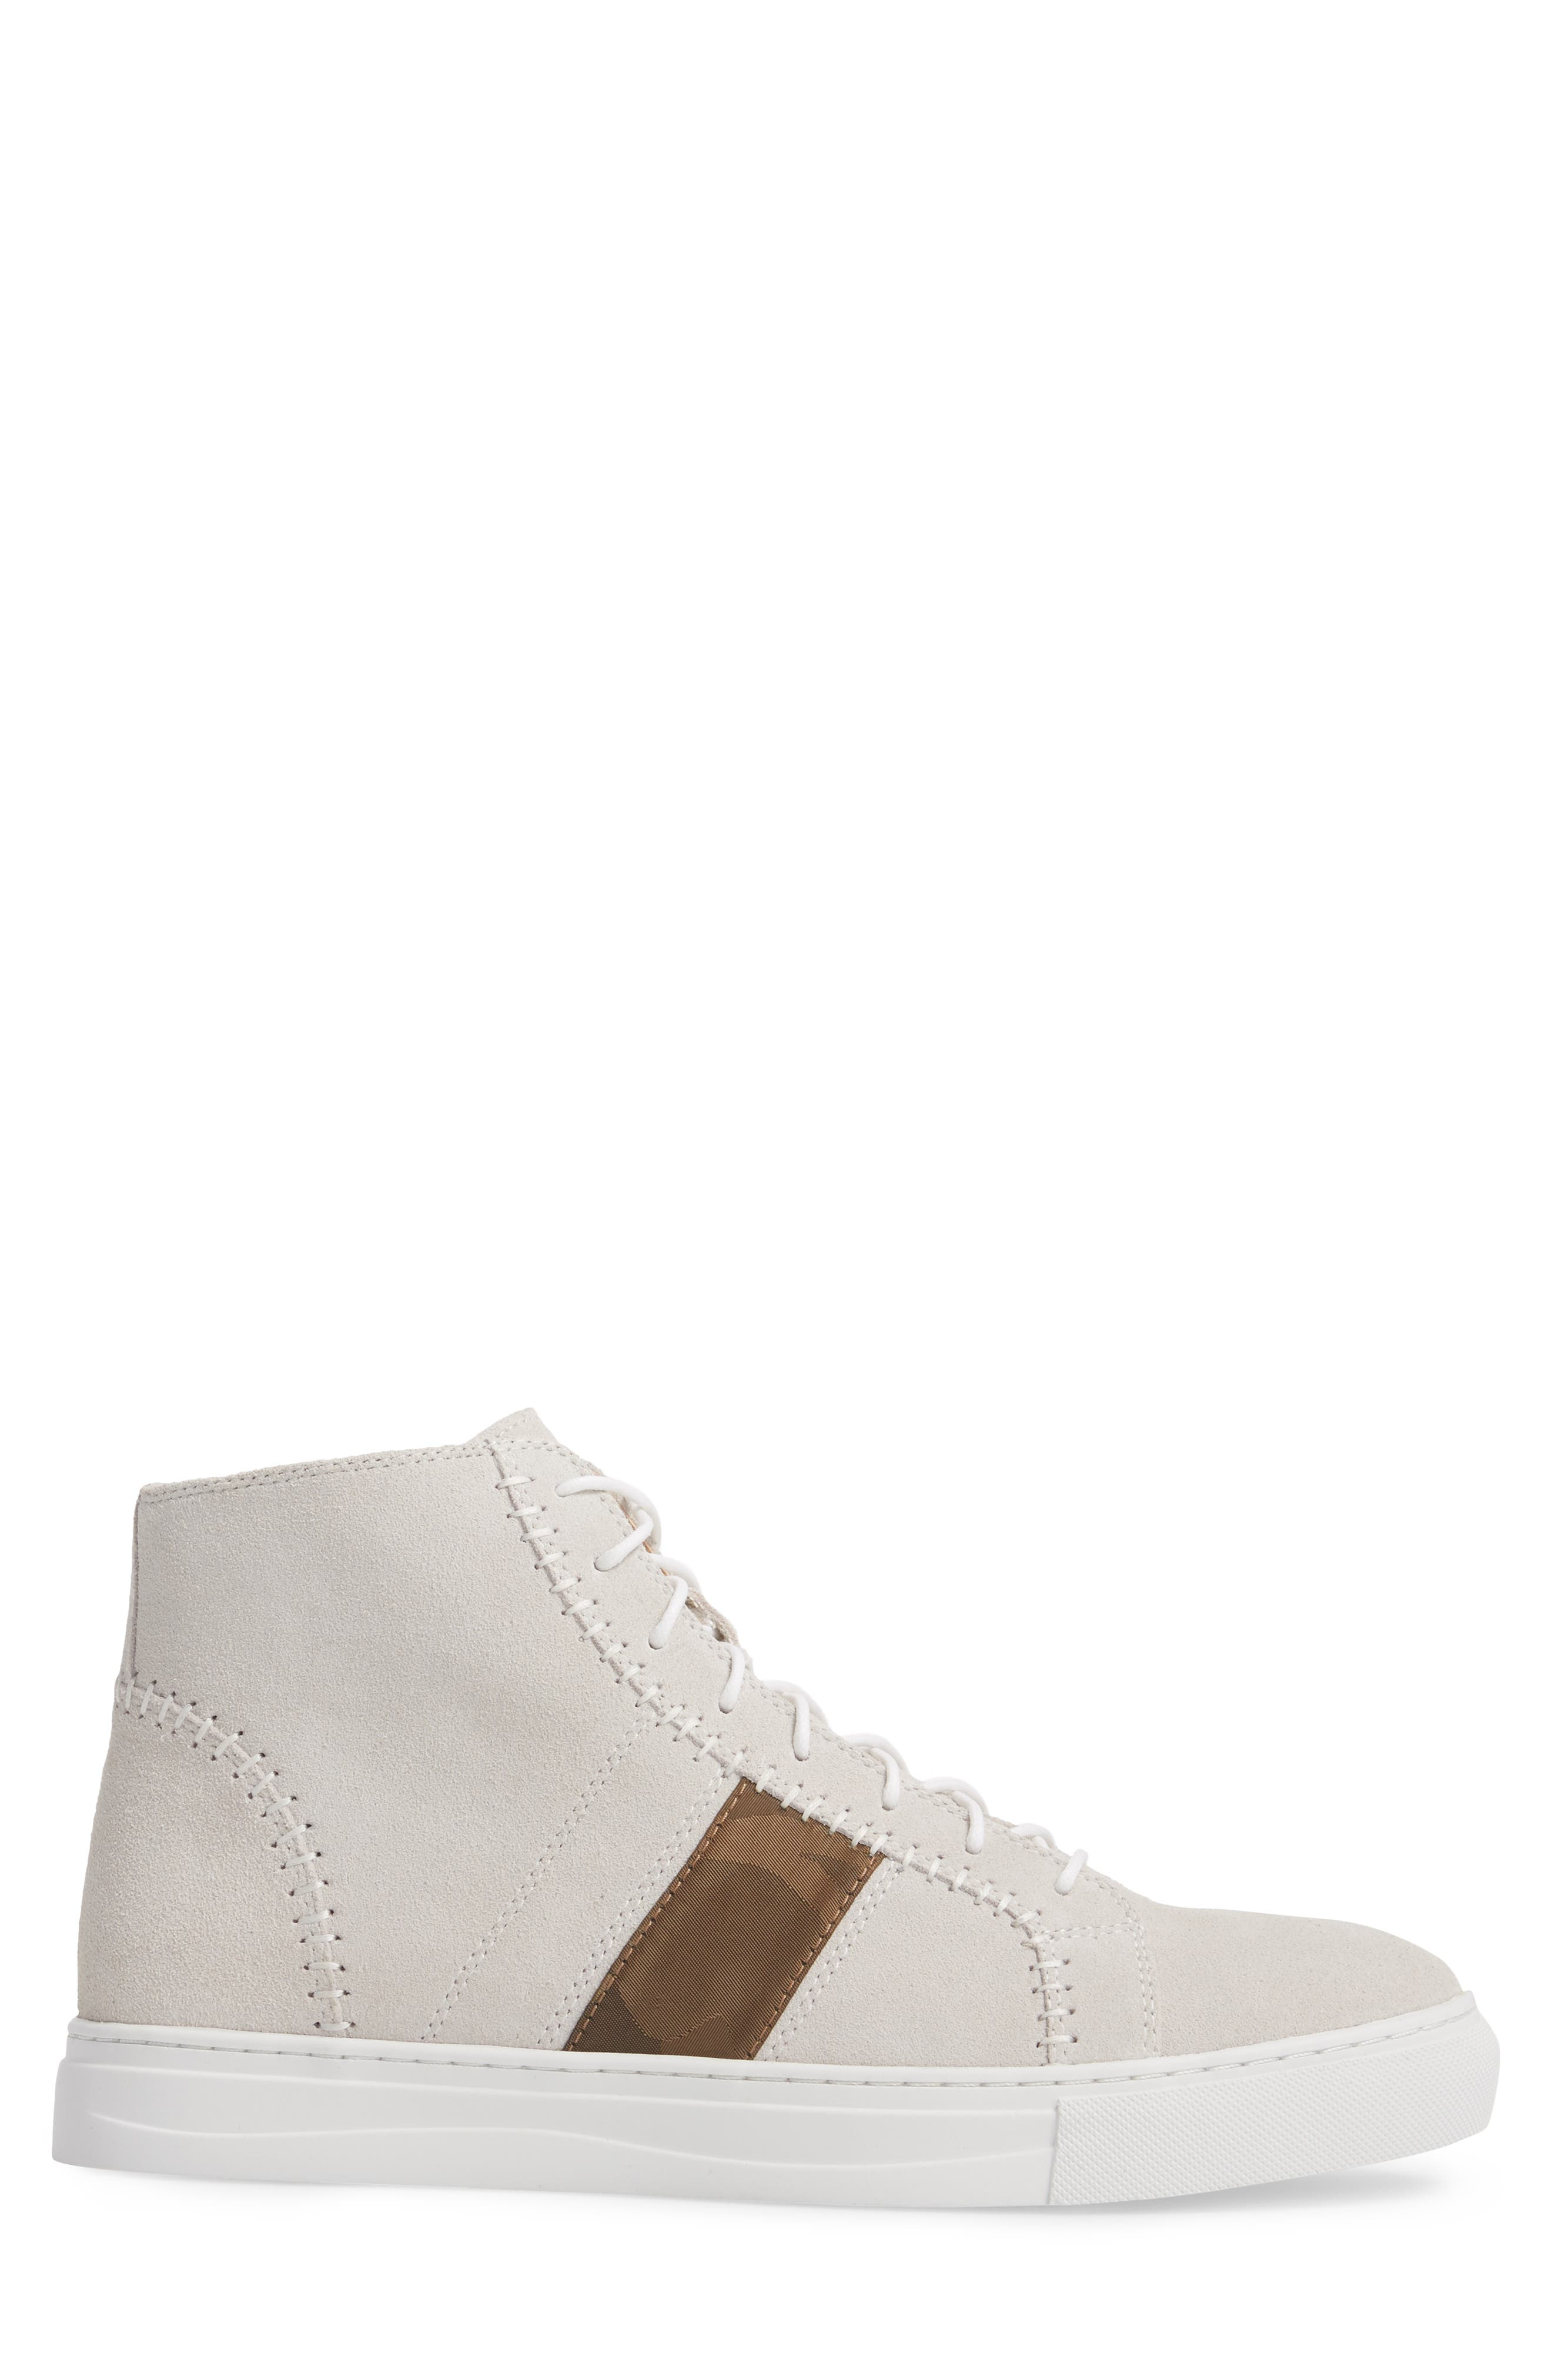 High Top Sneaker,                             Alternate thumbnail 3, color,                             White Suede